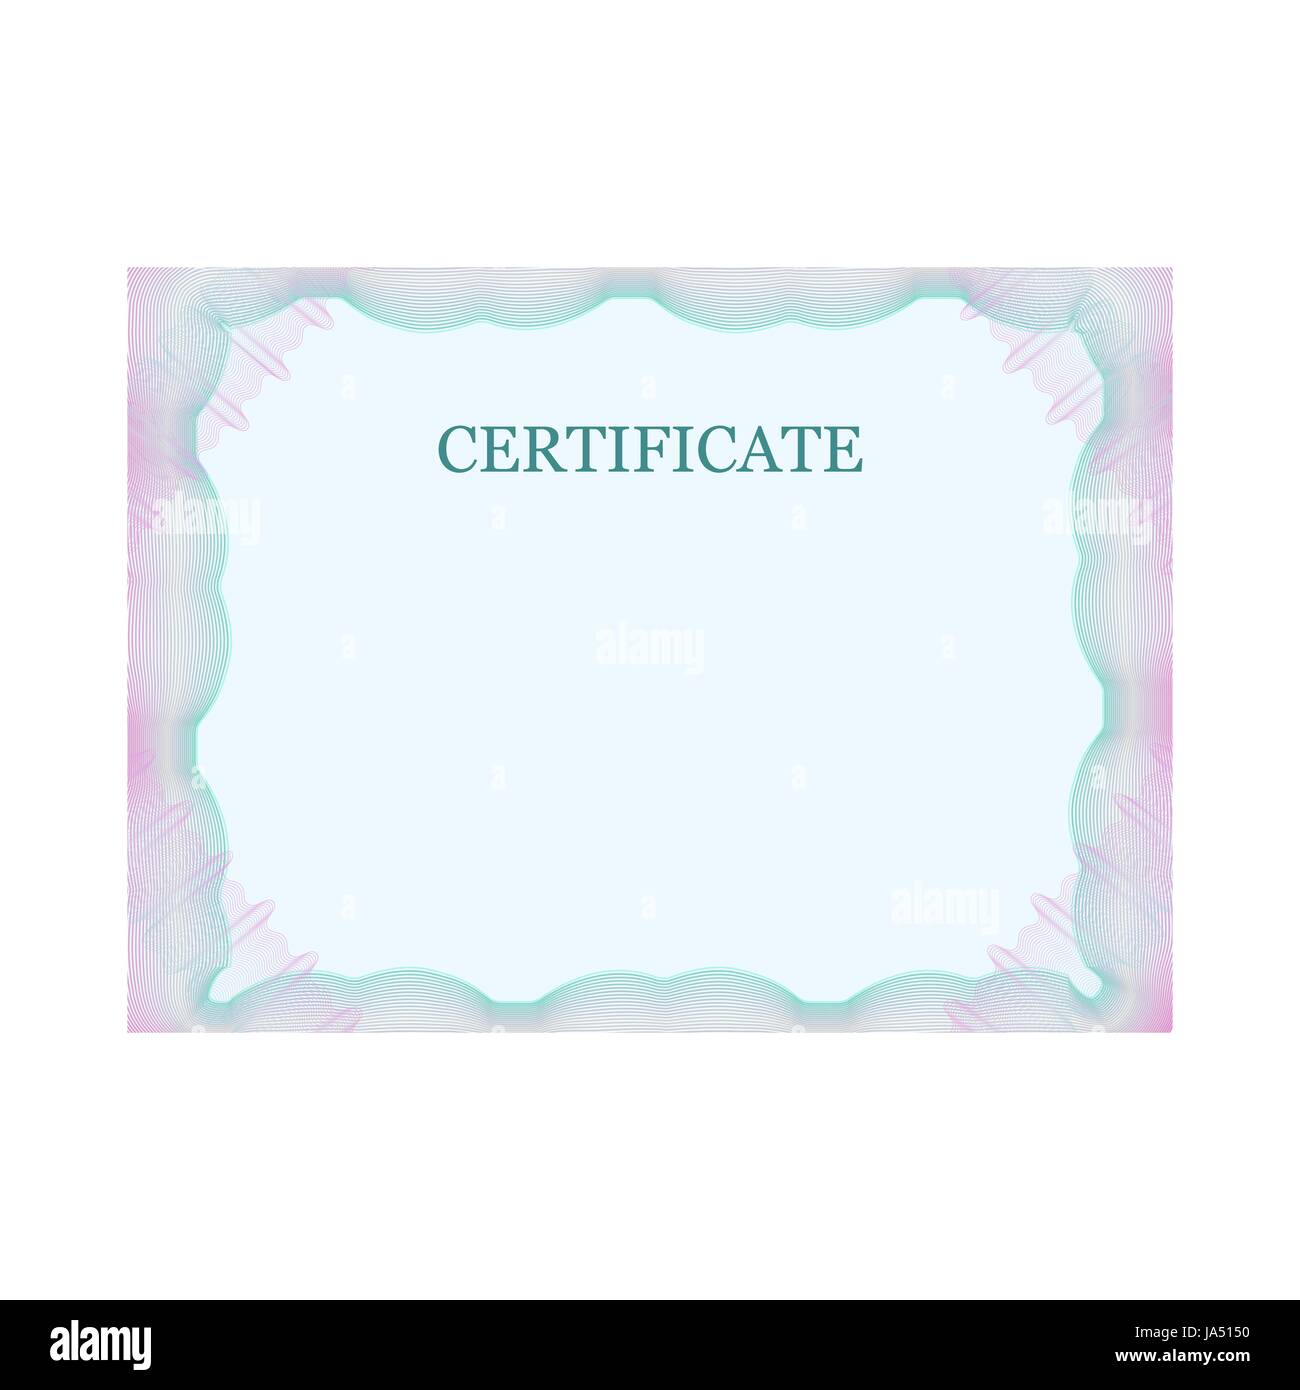 Certificate Border Stockfotos & Certificate Border Bilder - Alamy